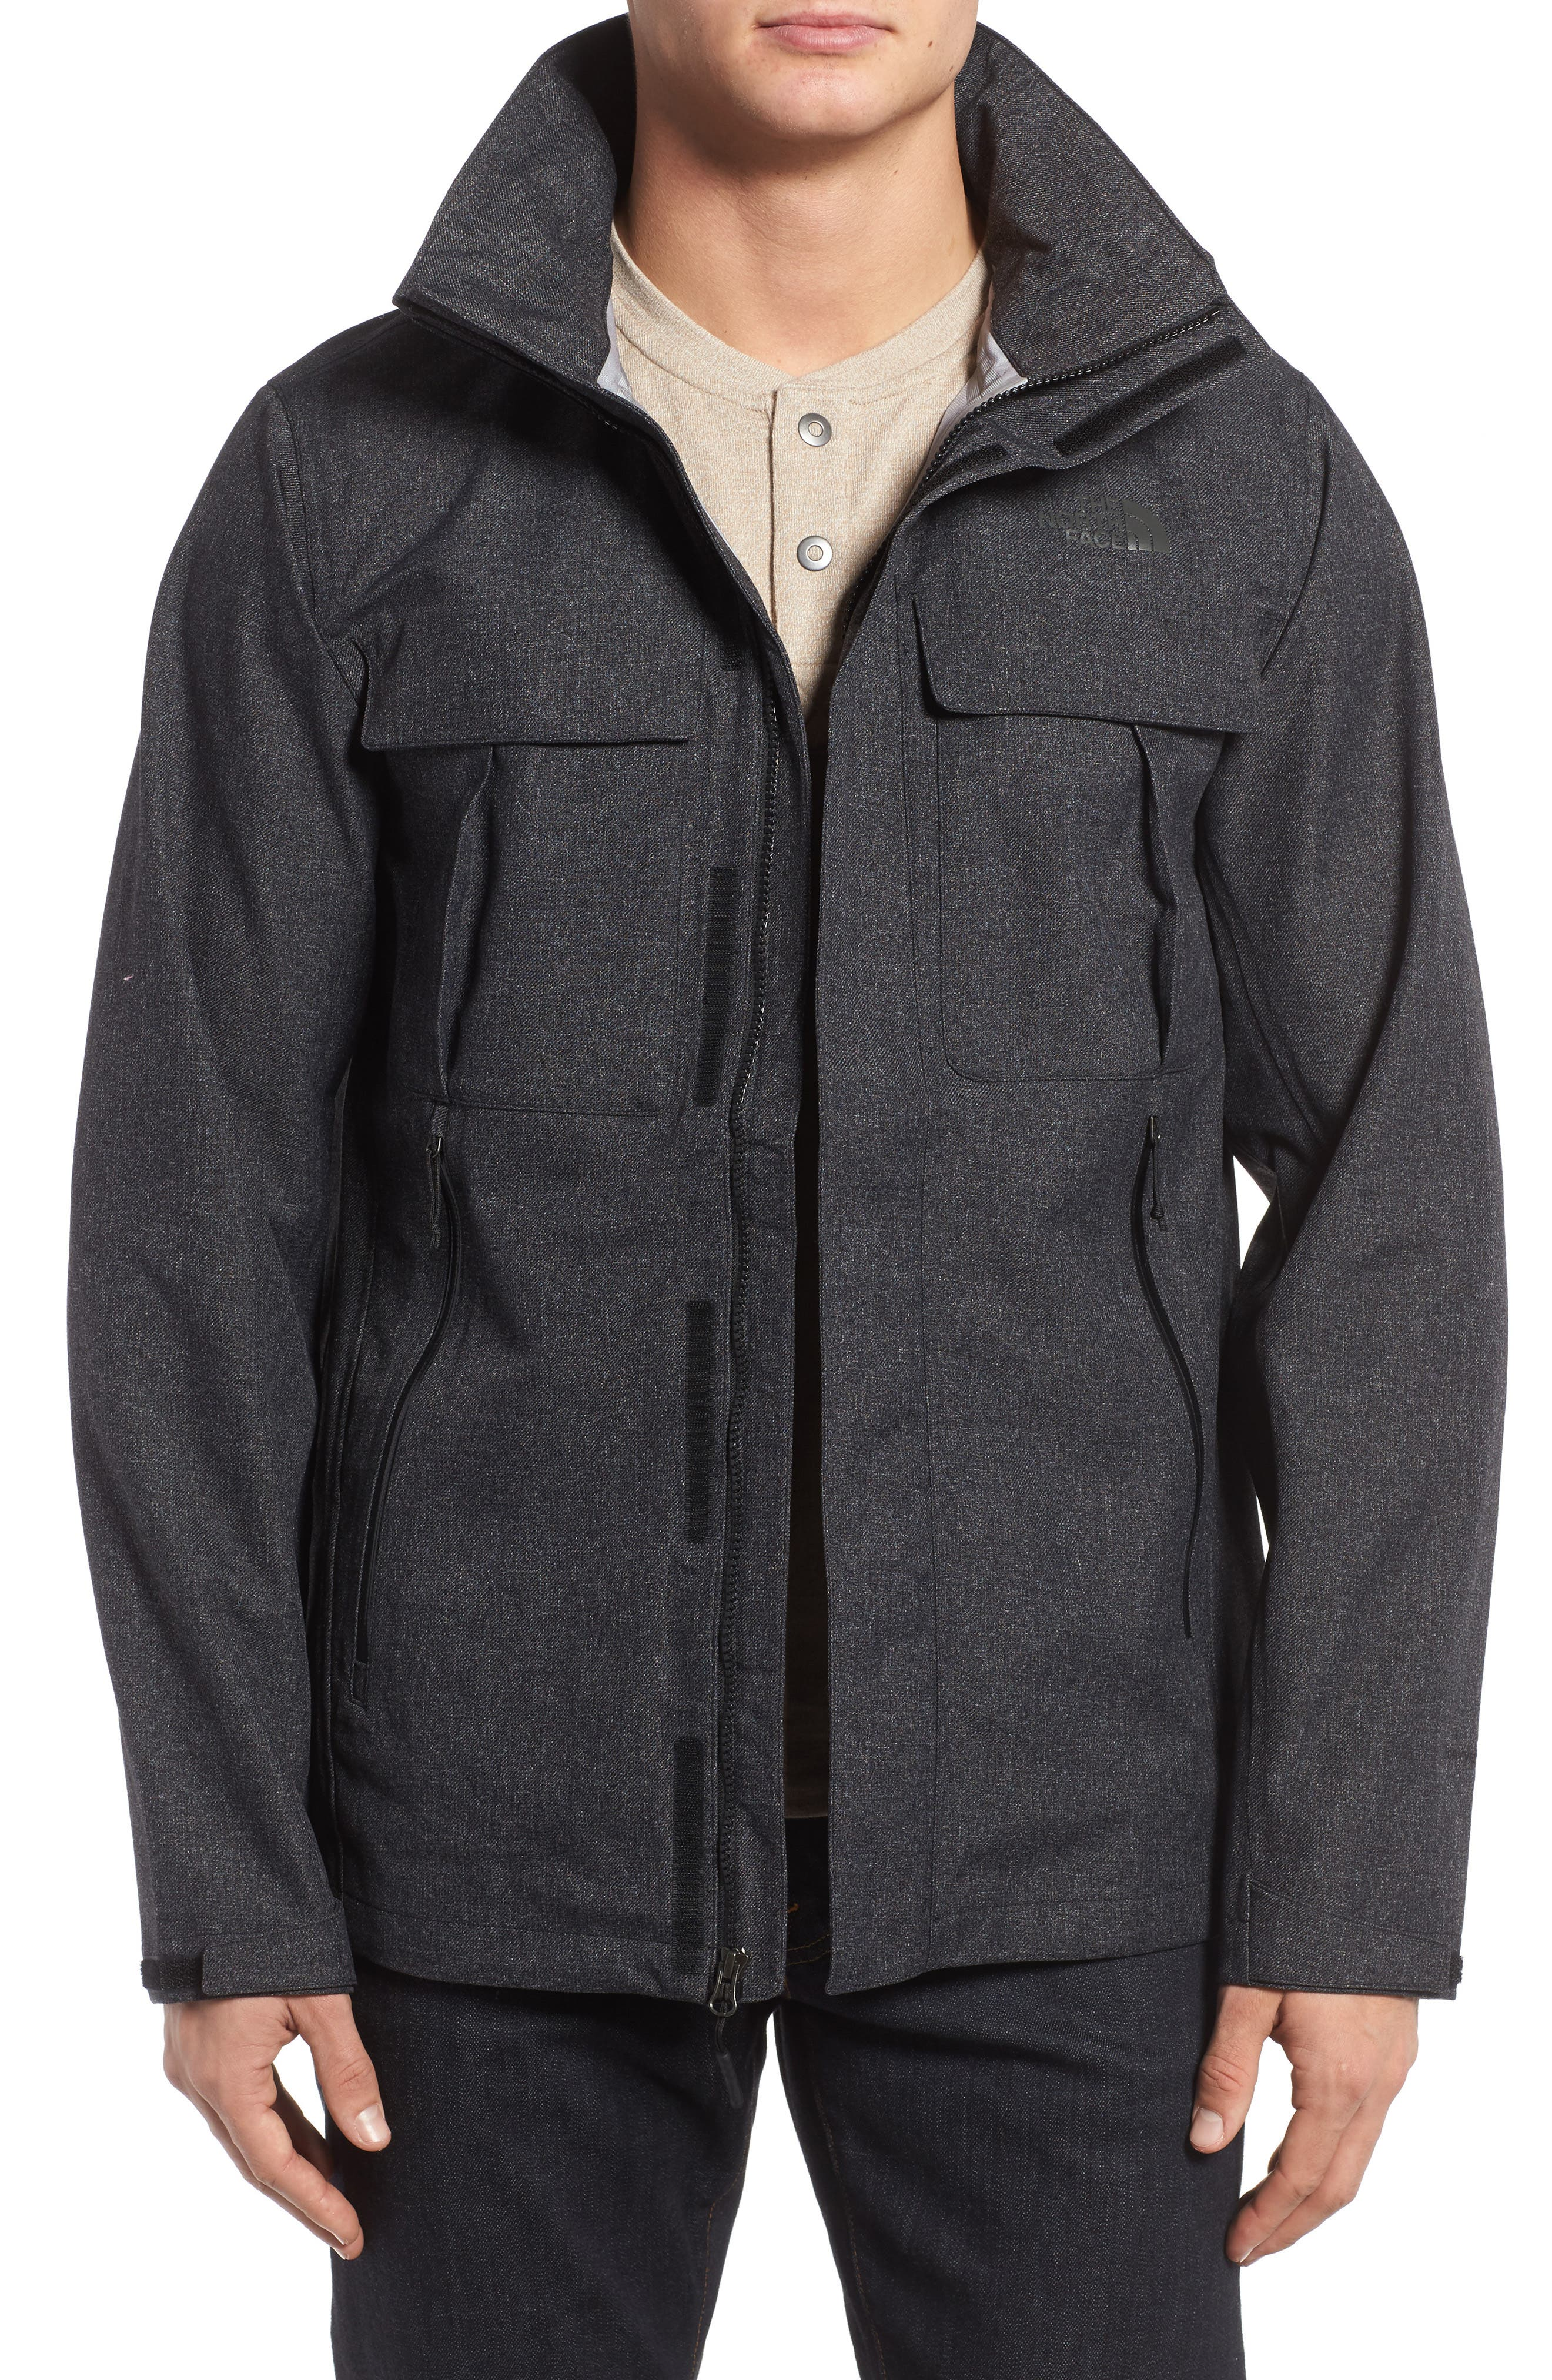 Kassler DryVent Field Jacket,                         Main,                         color, Tnf Black Heather